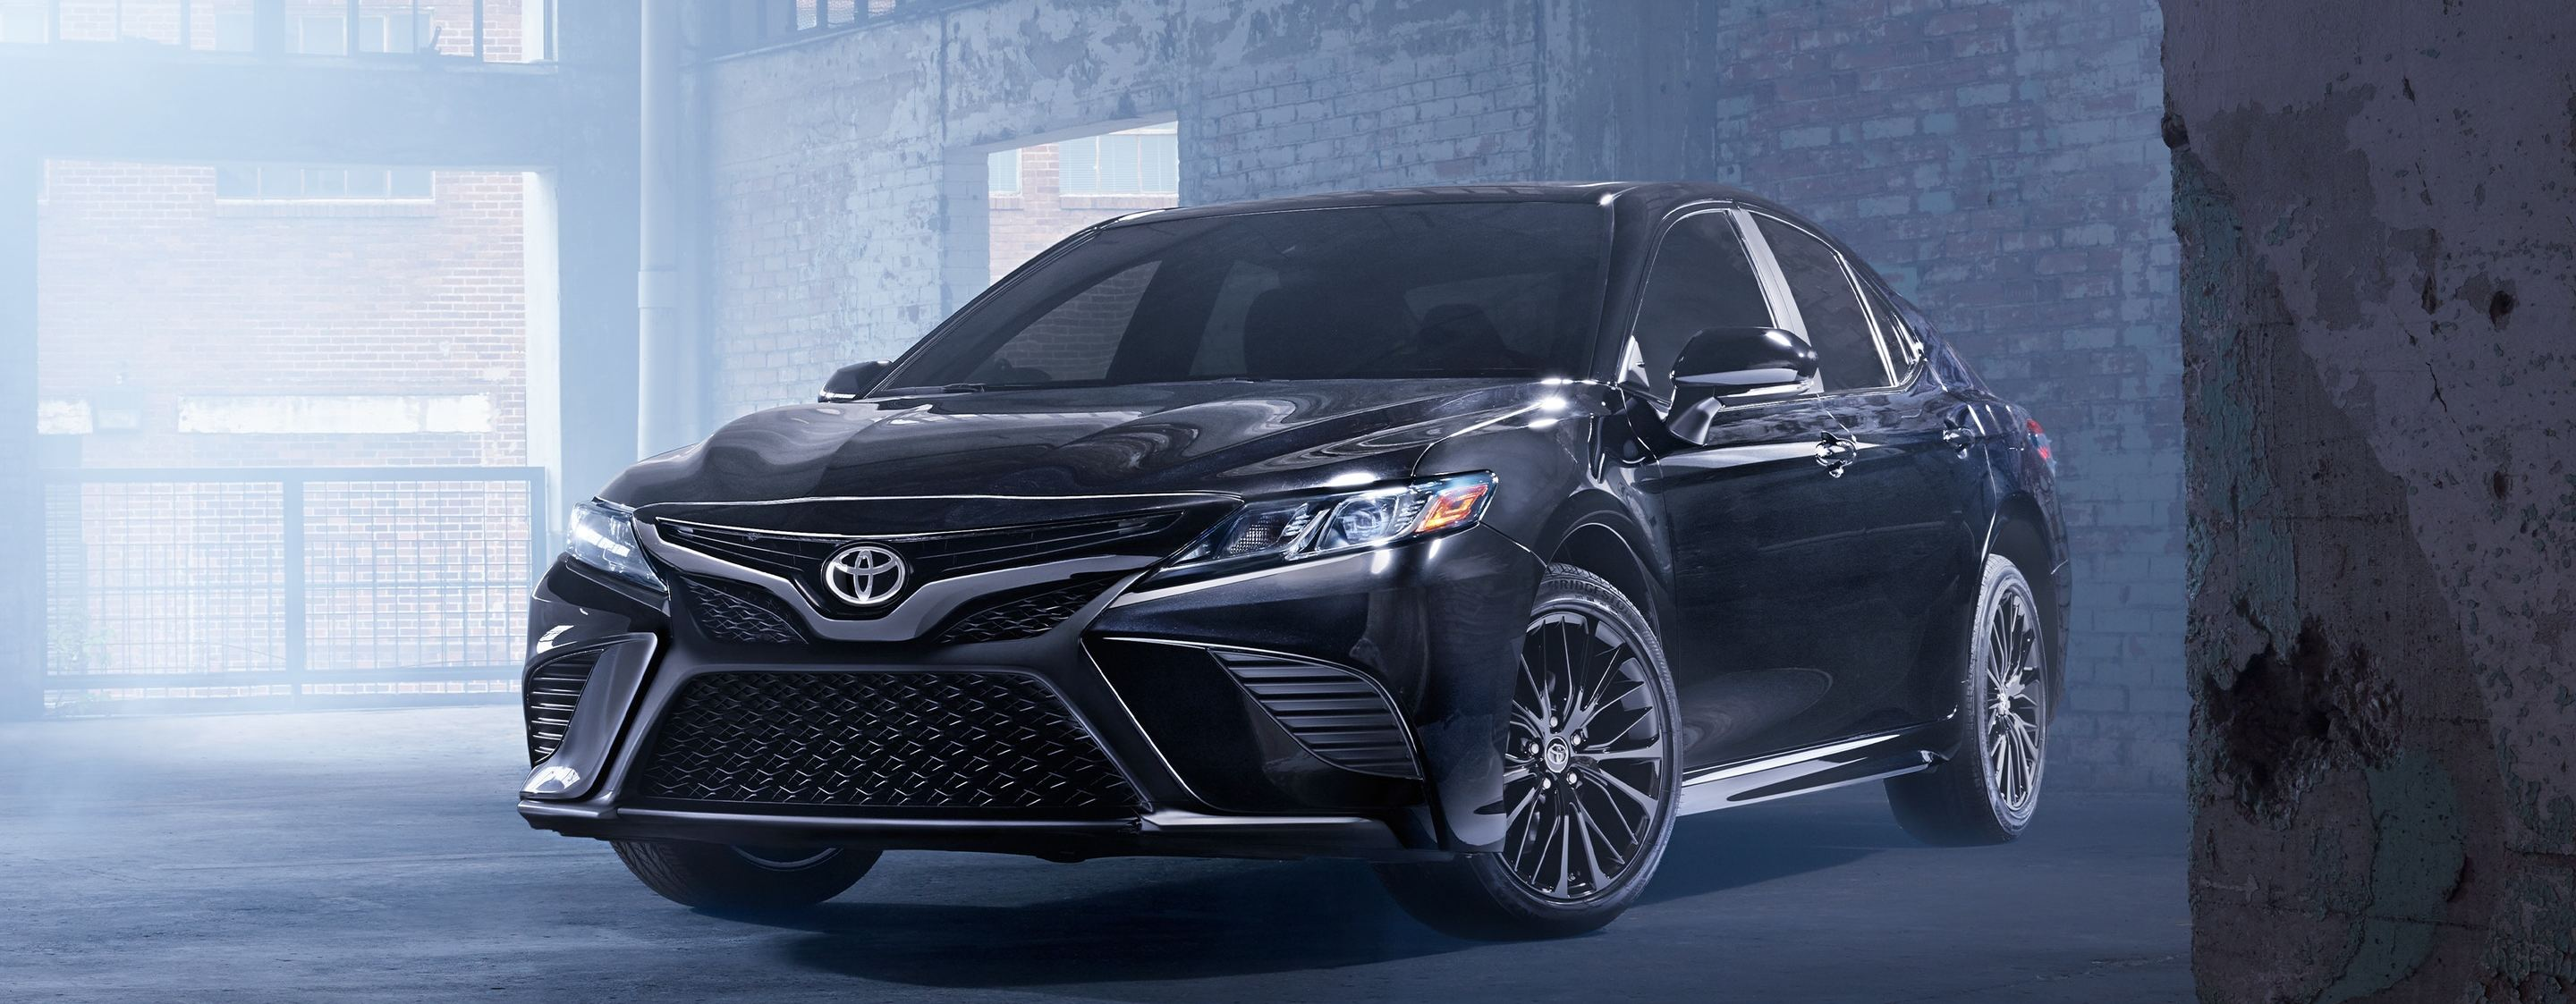 2020 Toyota Camry for Sale near Leawood, KS, 64804